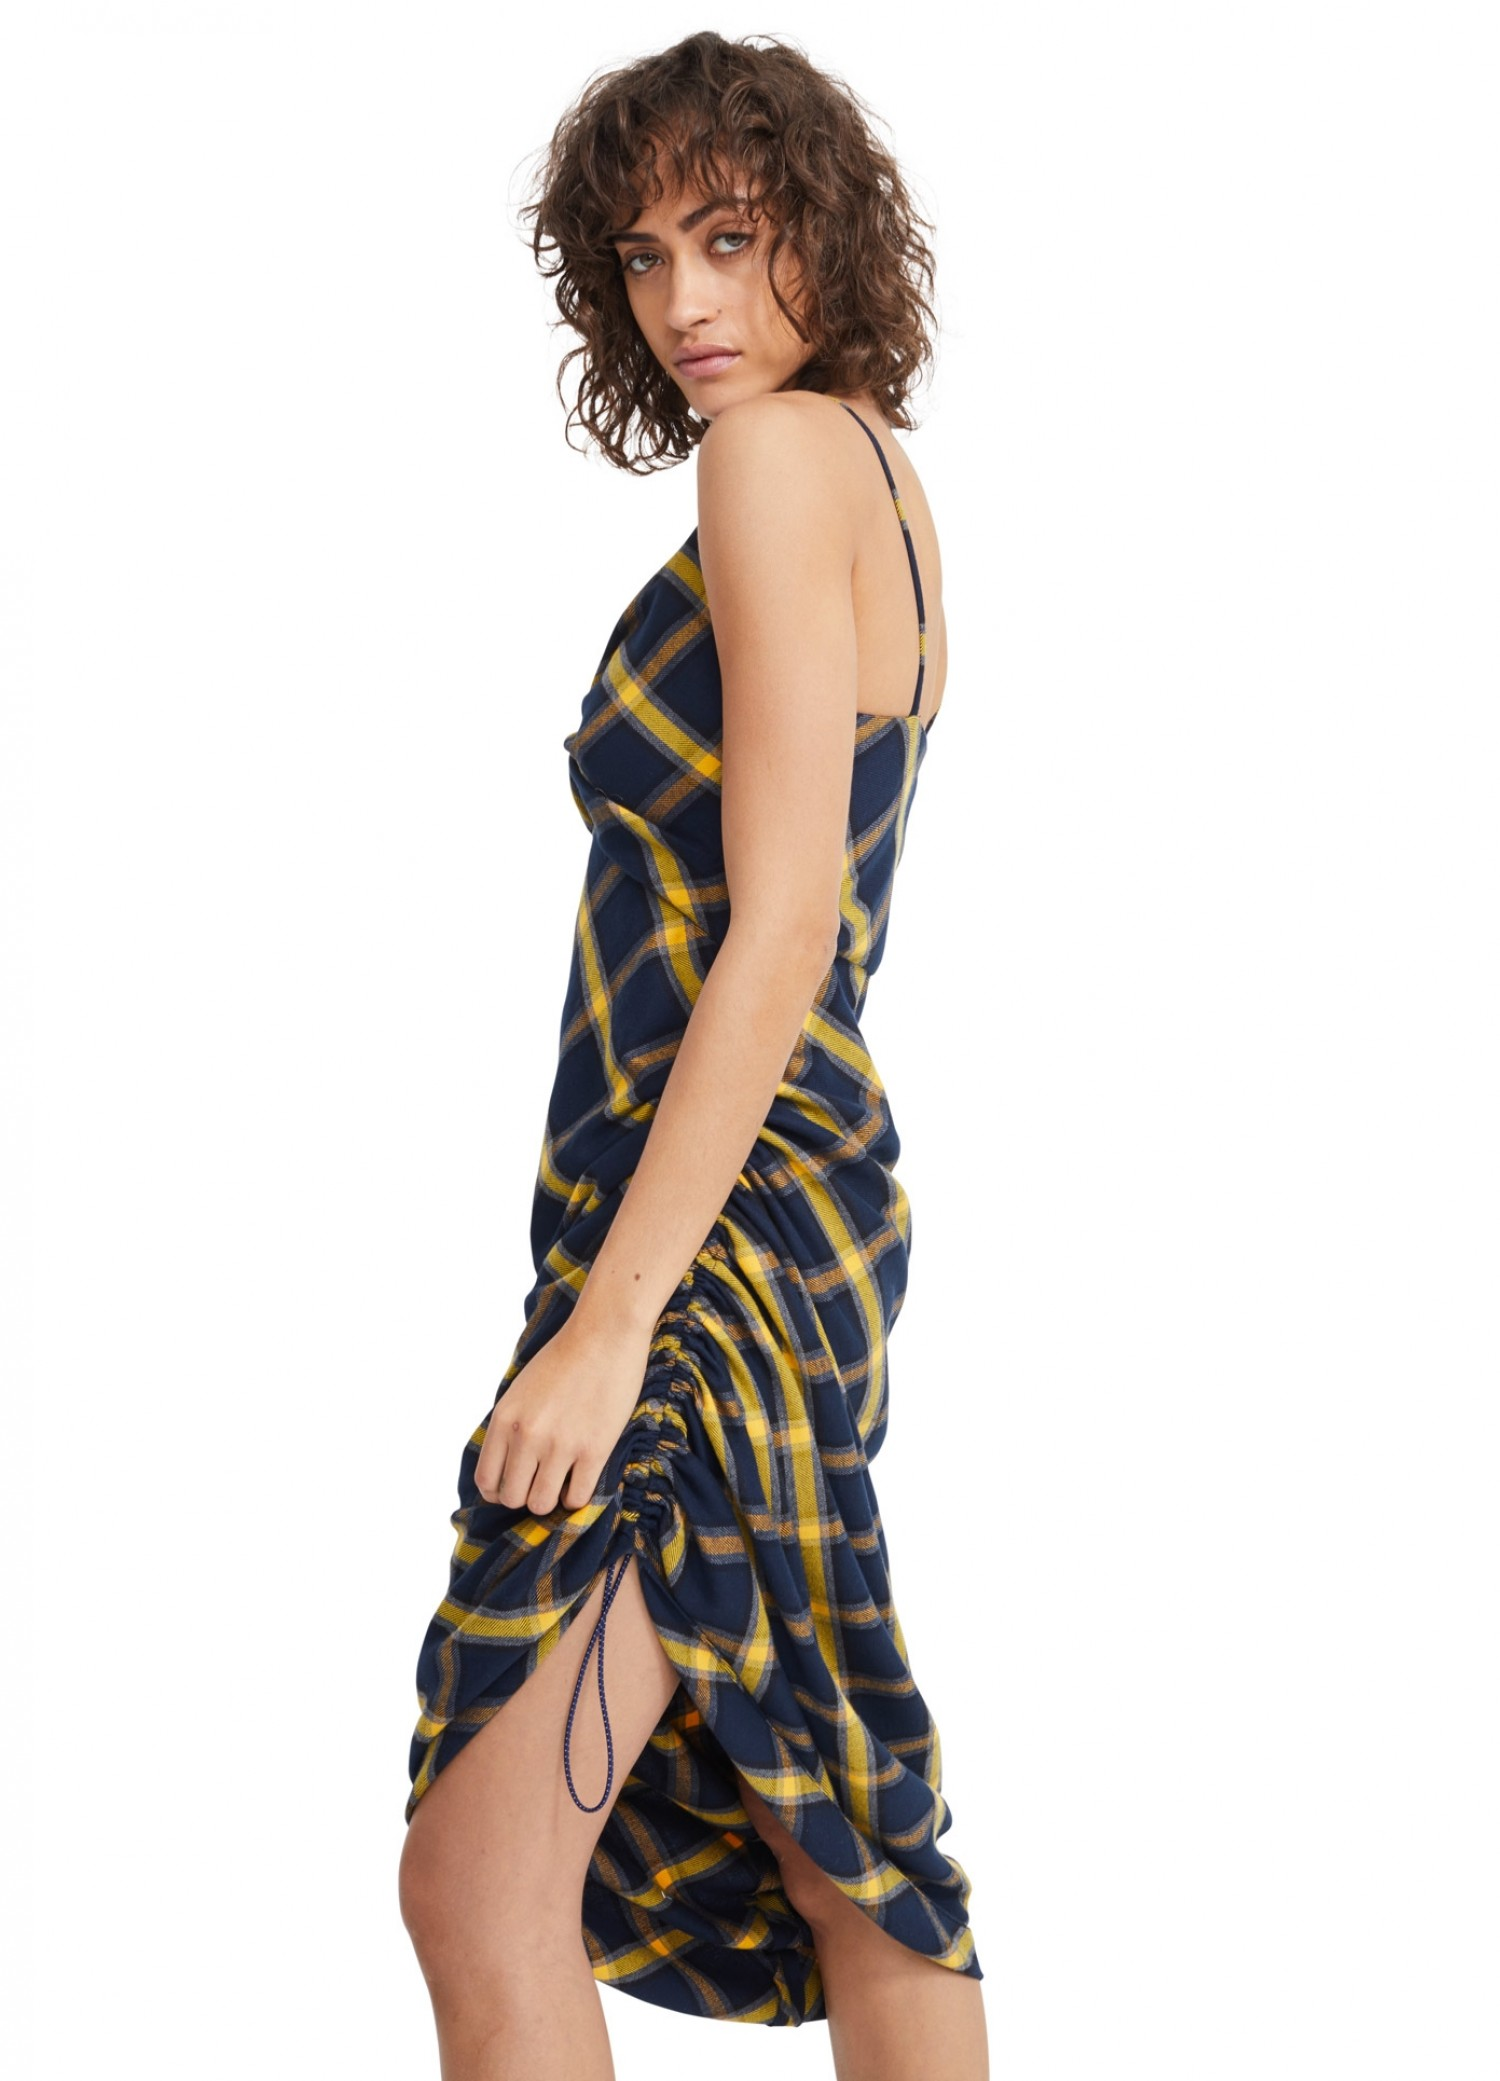 MONSE Twisted Plaid Slip Dress in Midnight and Yellow on Model Side View